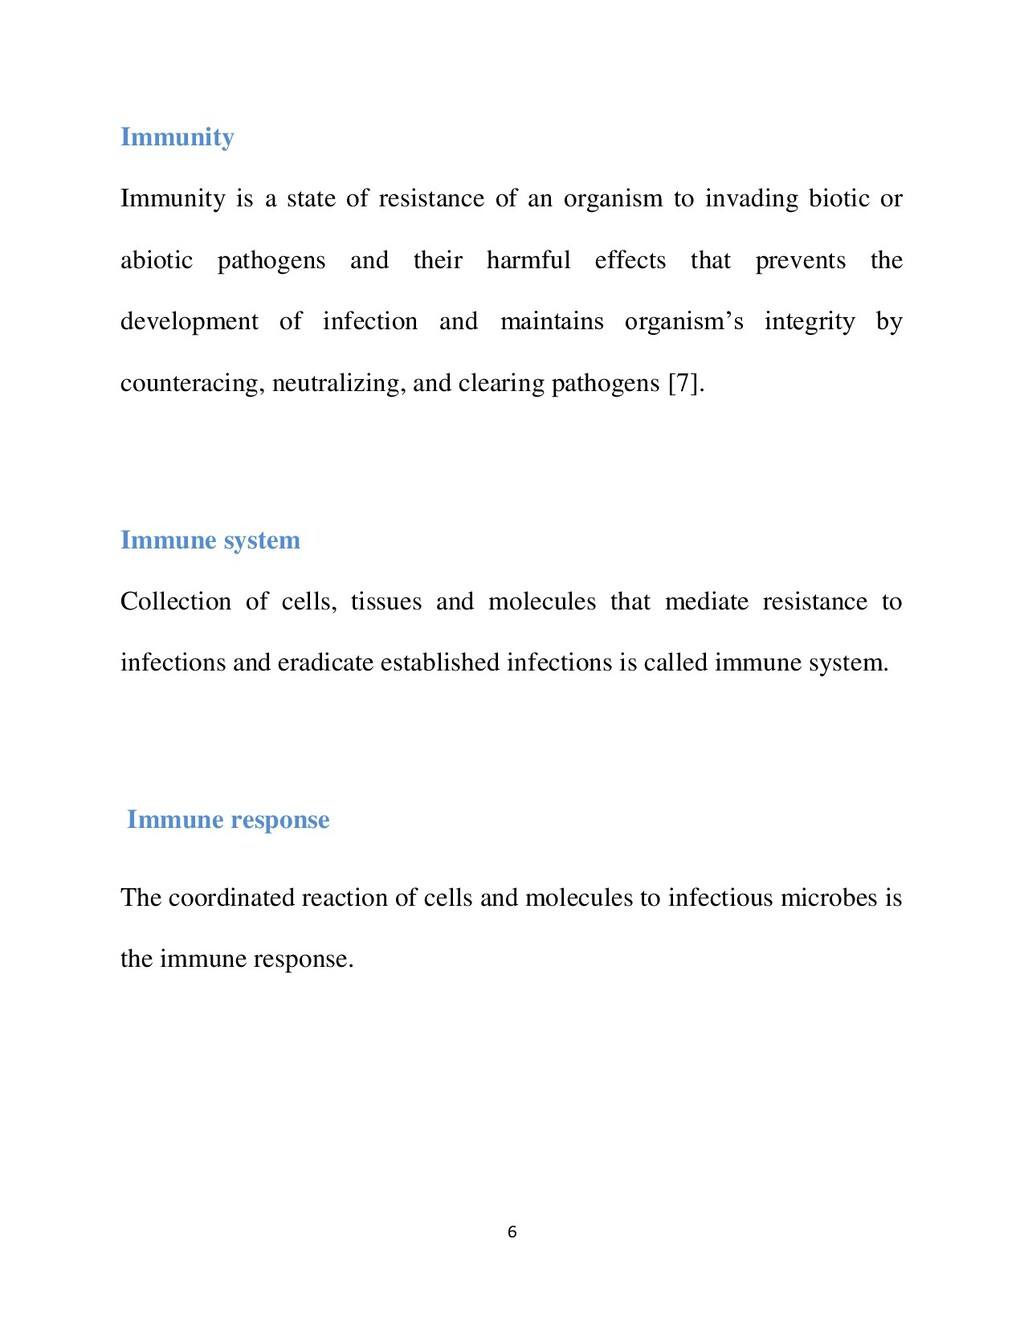 6 Immunity Immunity is a state of resistance of...